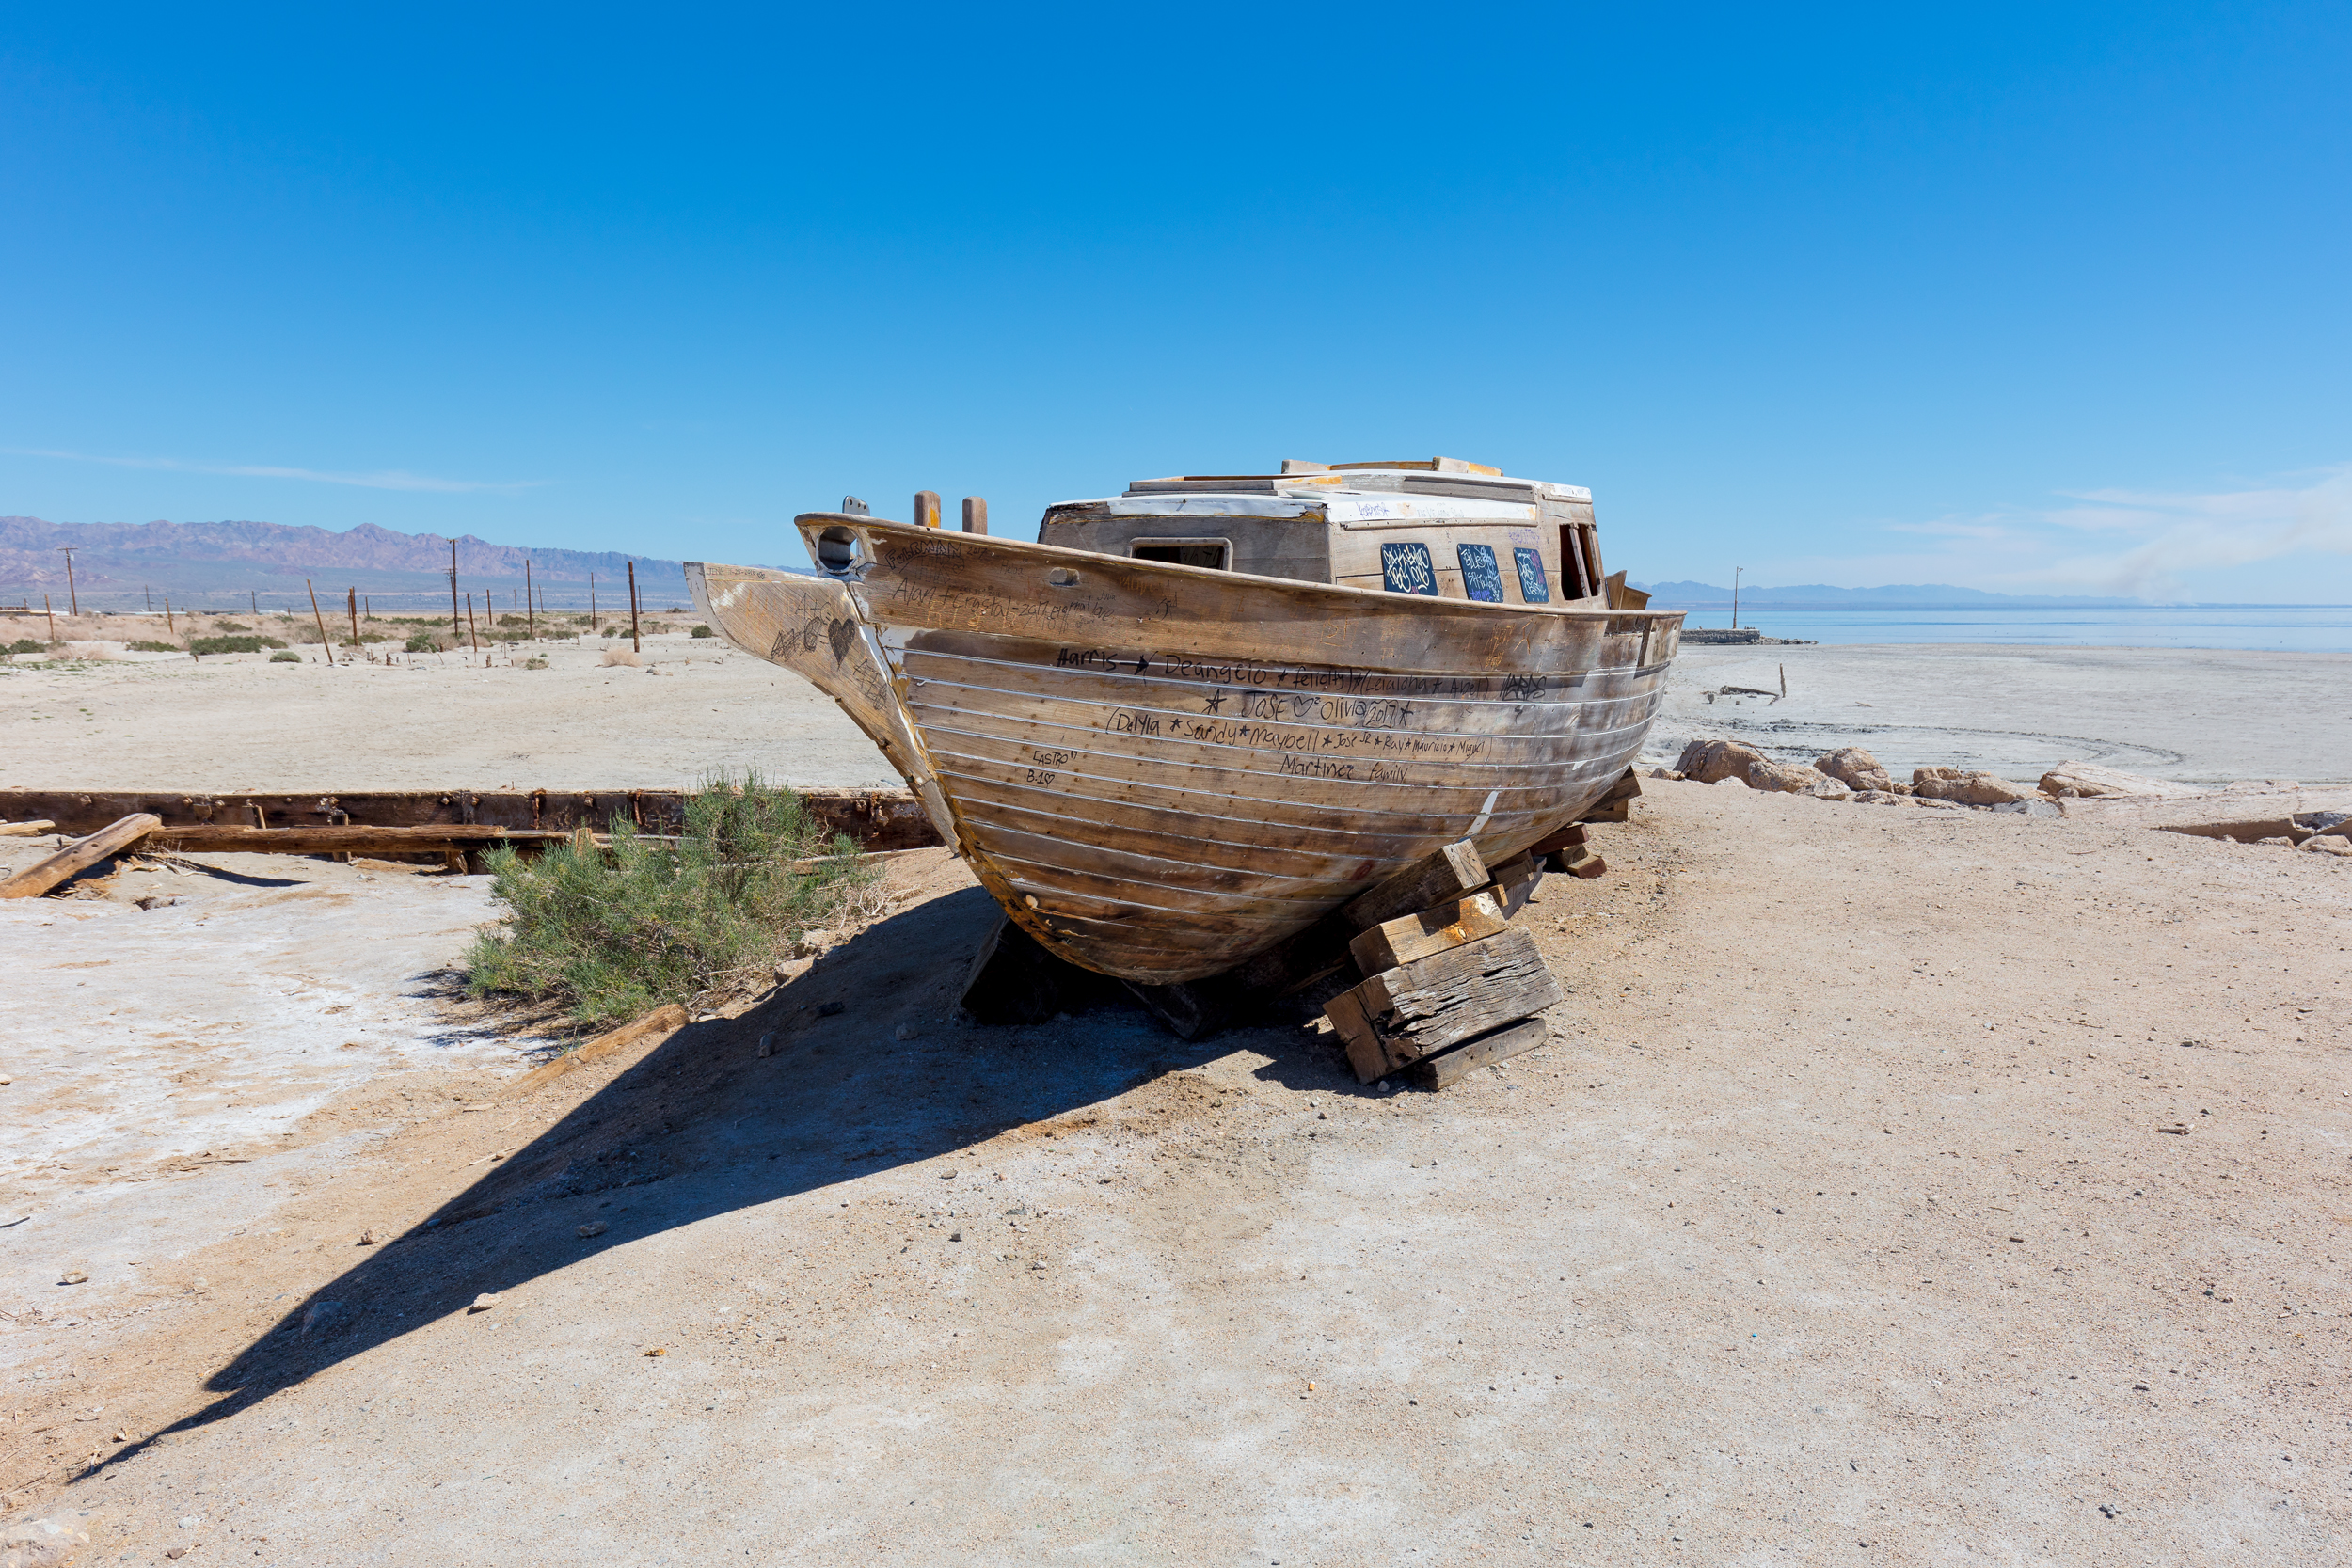 William_Short_Photography_Salton_Sea_2017_470